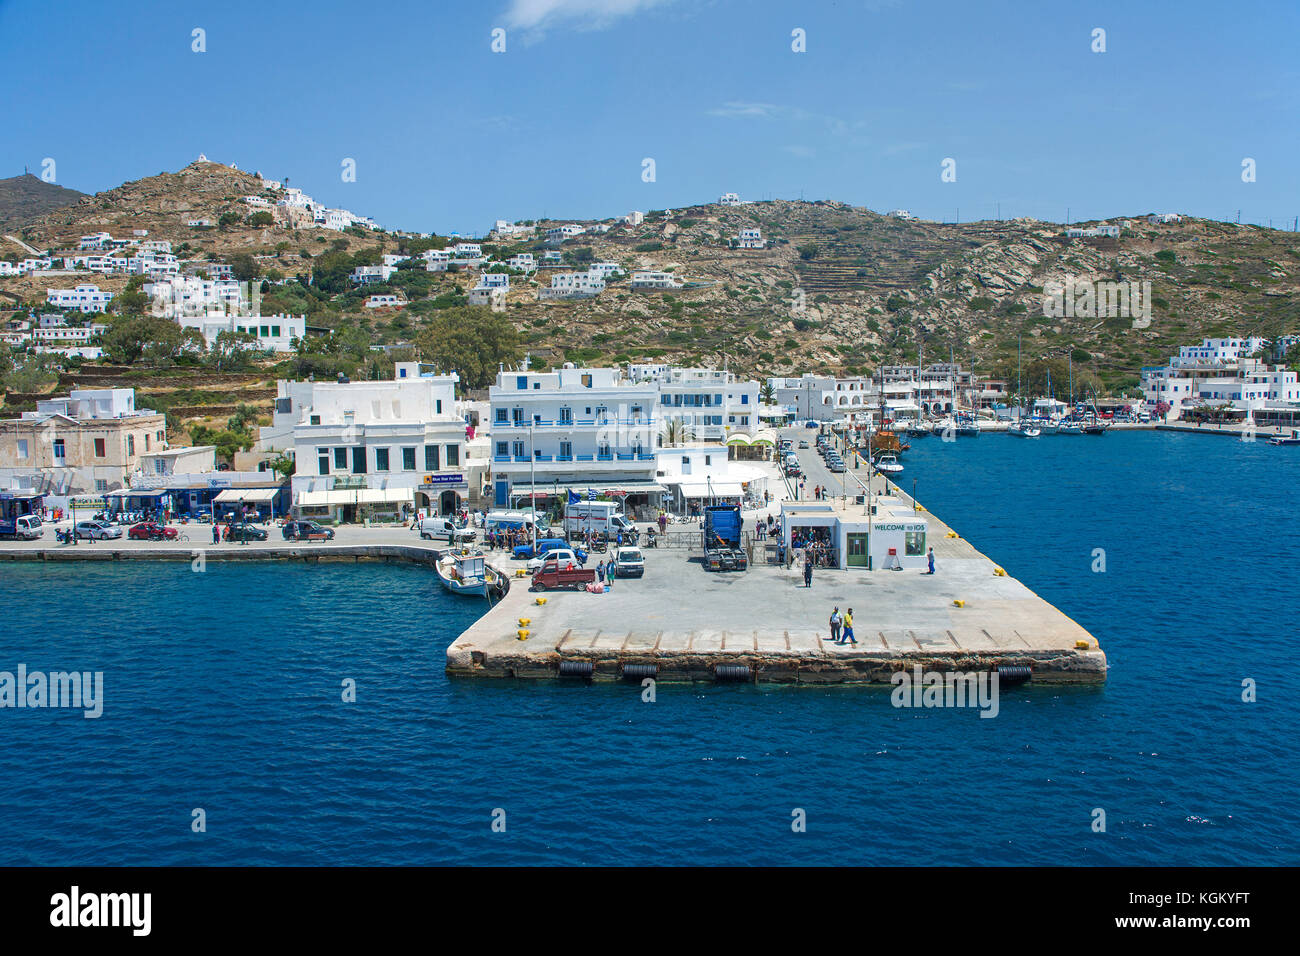 Pier and harbour of Ormos, Ios island, Cyclades, Aegean, Greece - Stock Image